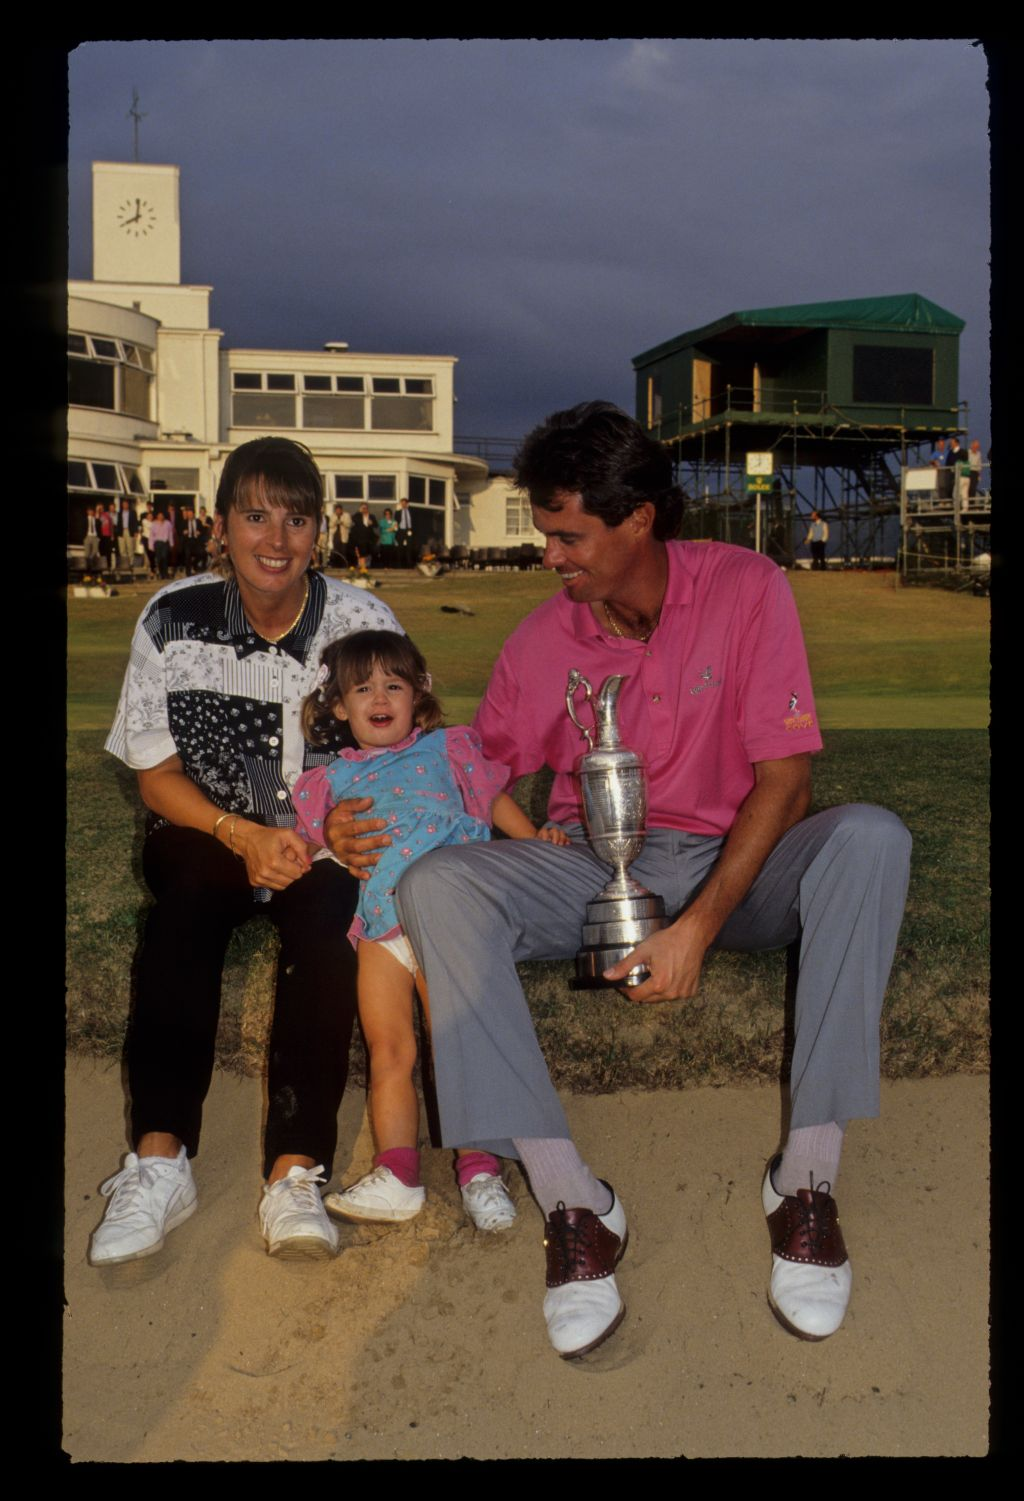 Ian Baker Finch and his family with the Claret Jug after winning the 1991 Open Championship